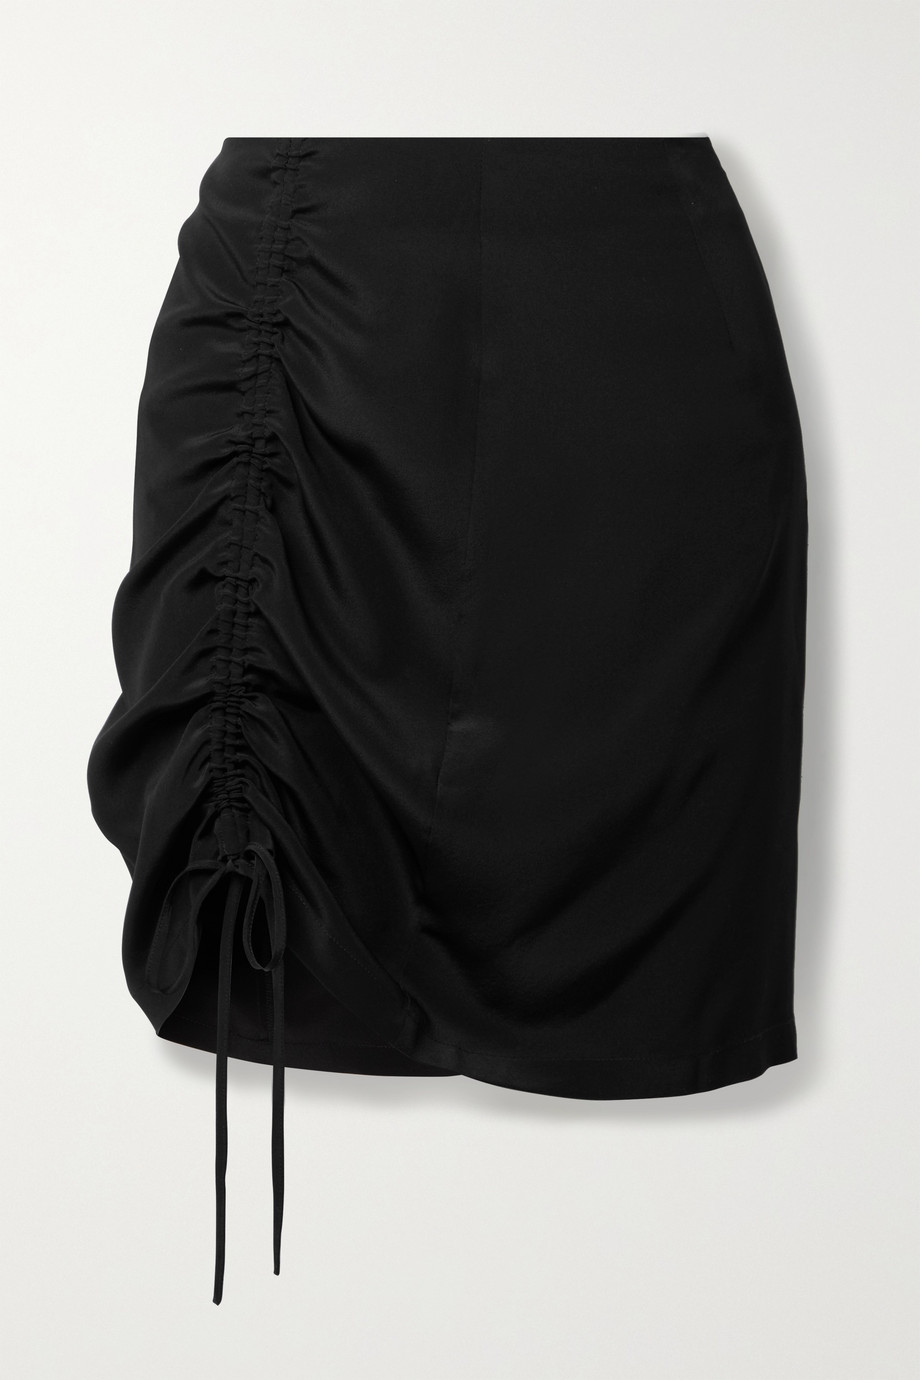 ENVELOPE1976 View ruched silk-satin mini skirt